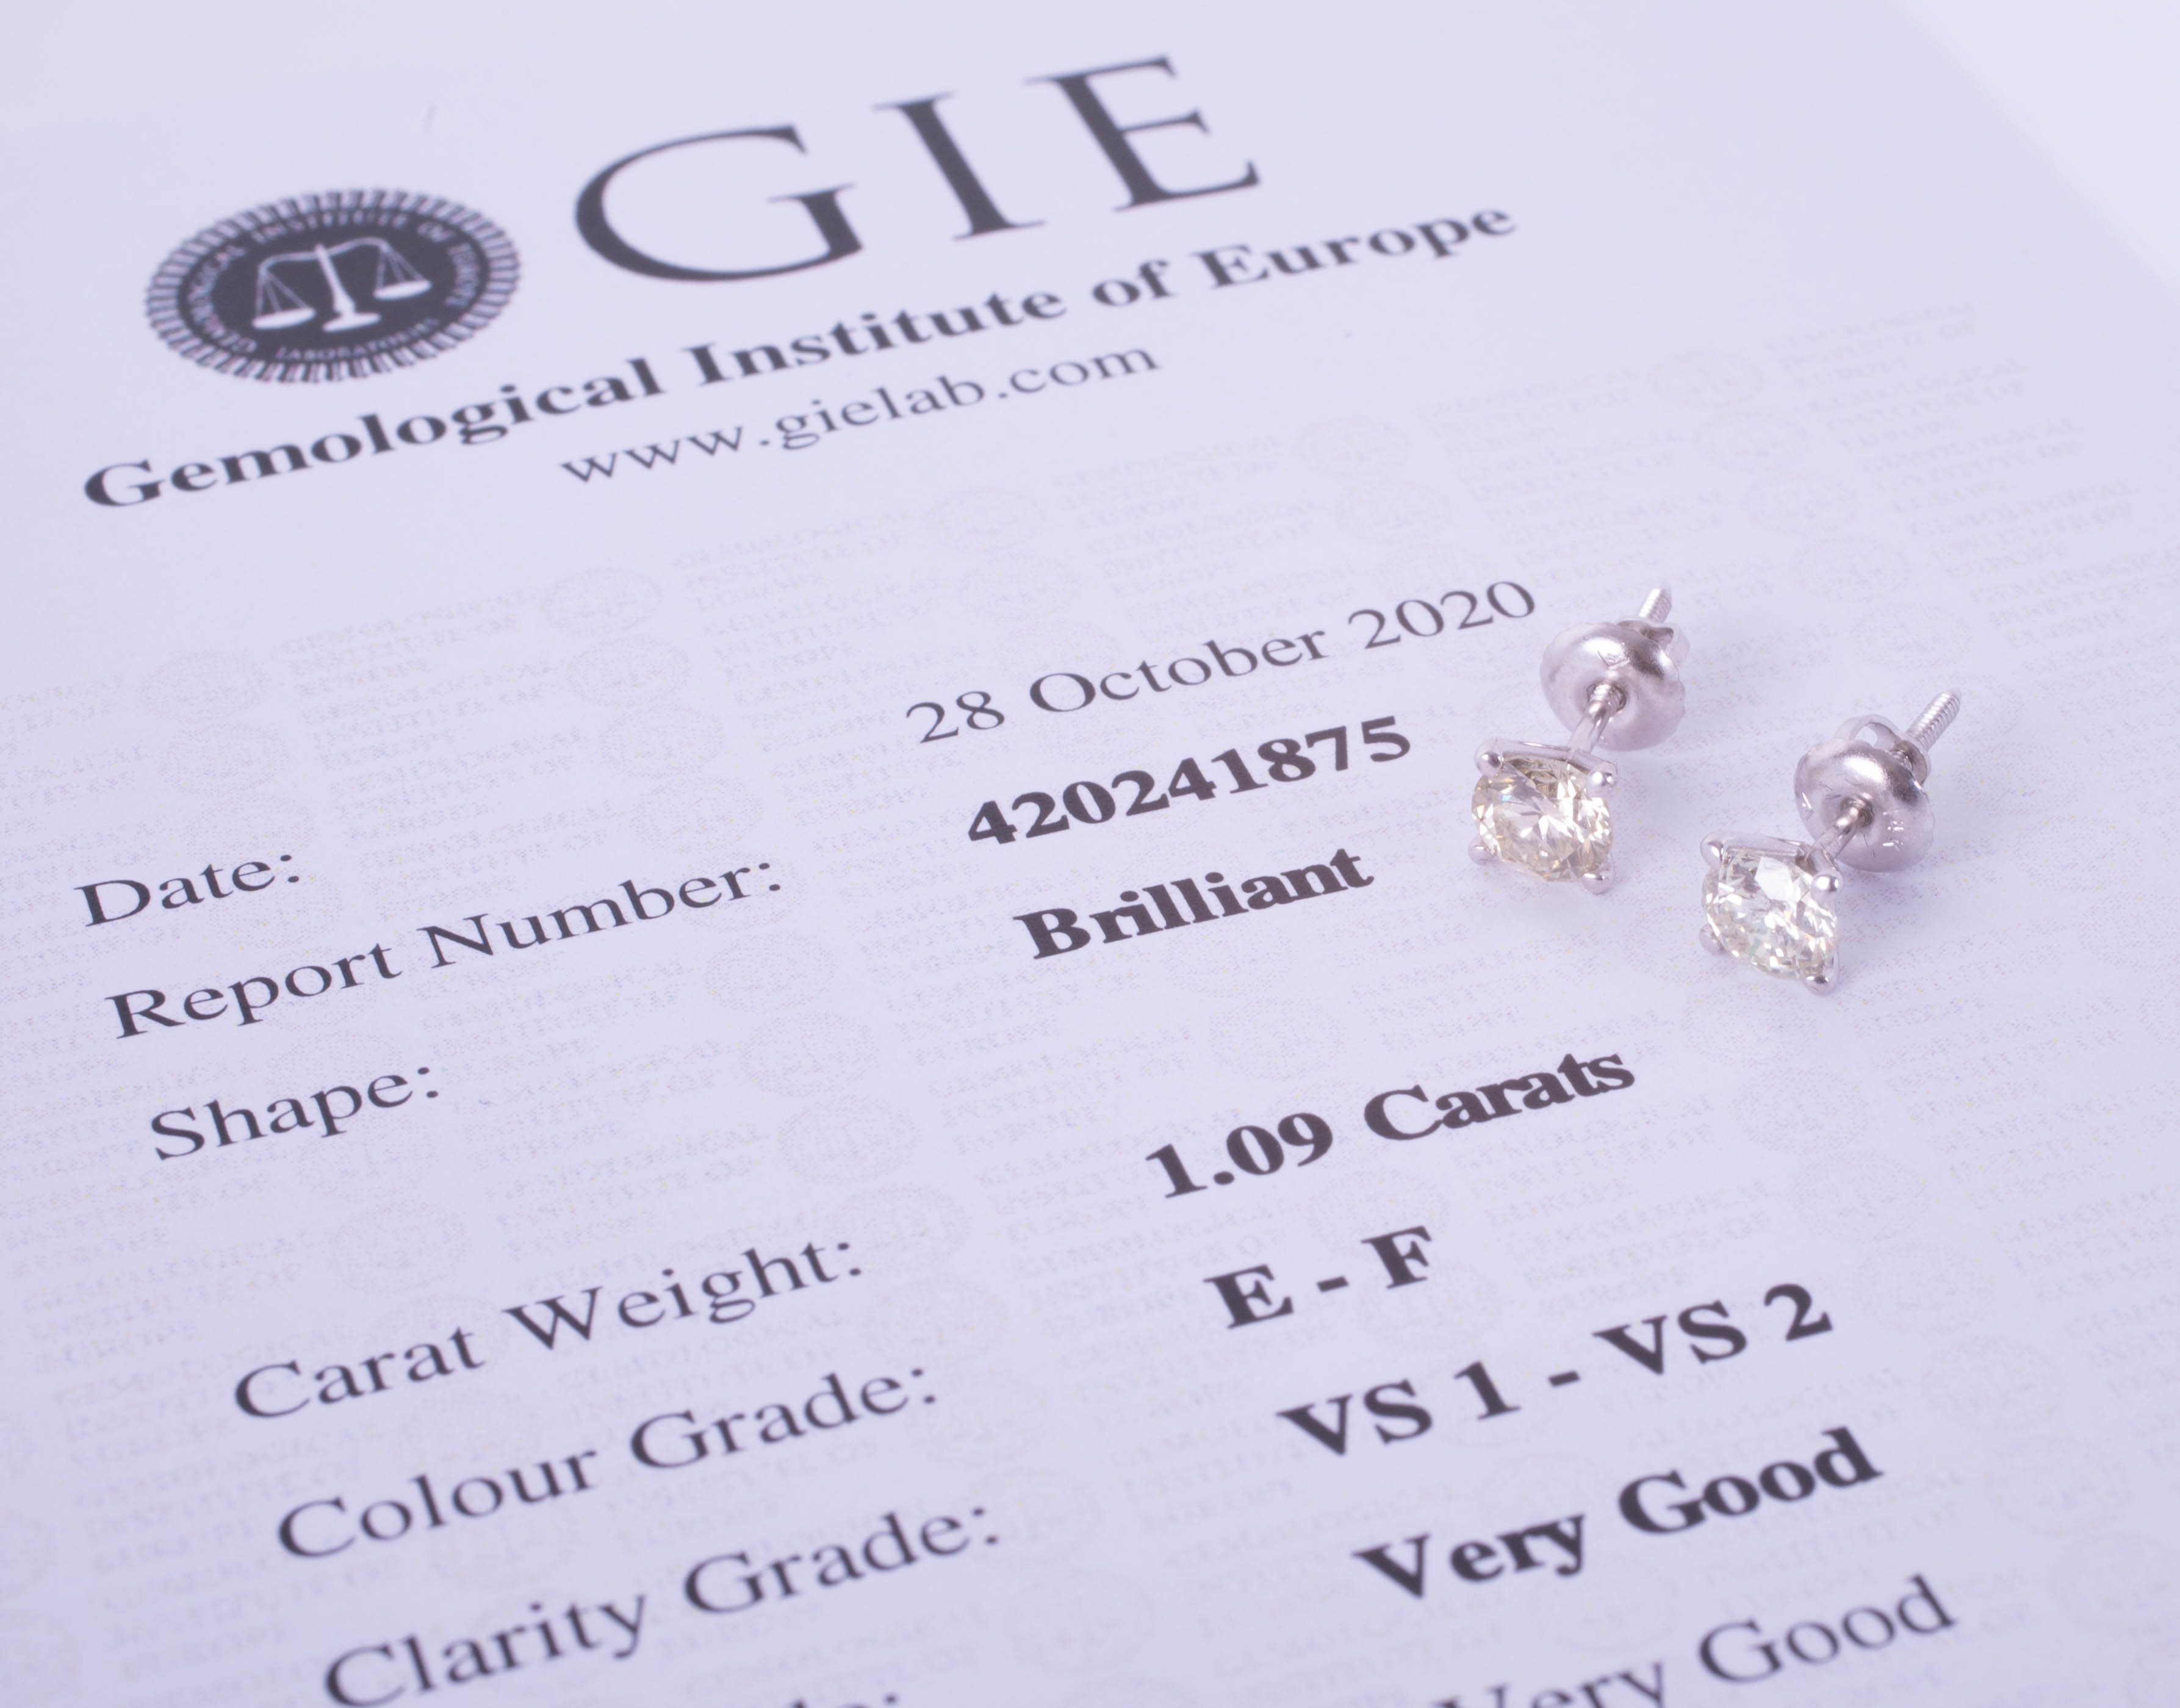 A pair of 14k white gold and diamond earrings, weight 1.09 carat, colour E-F, clarity VS1-VS2 - Image 2 of 2